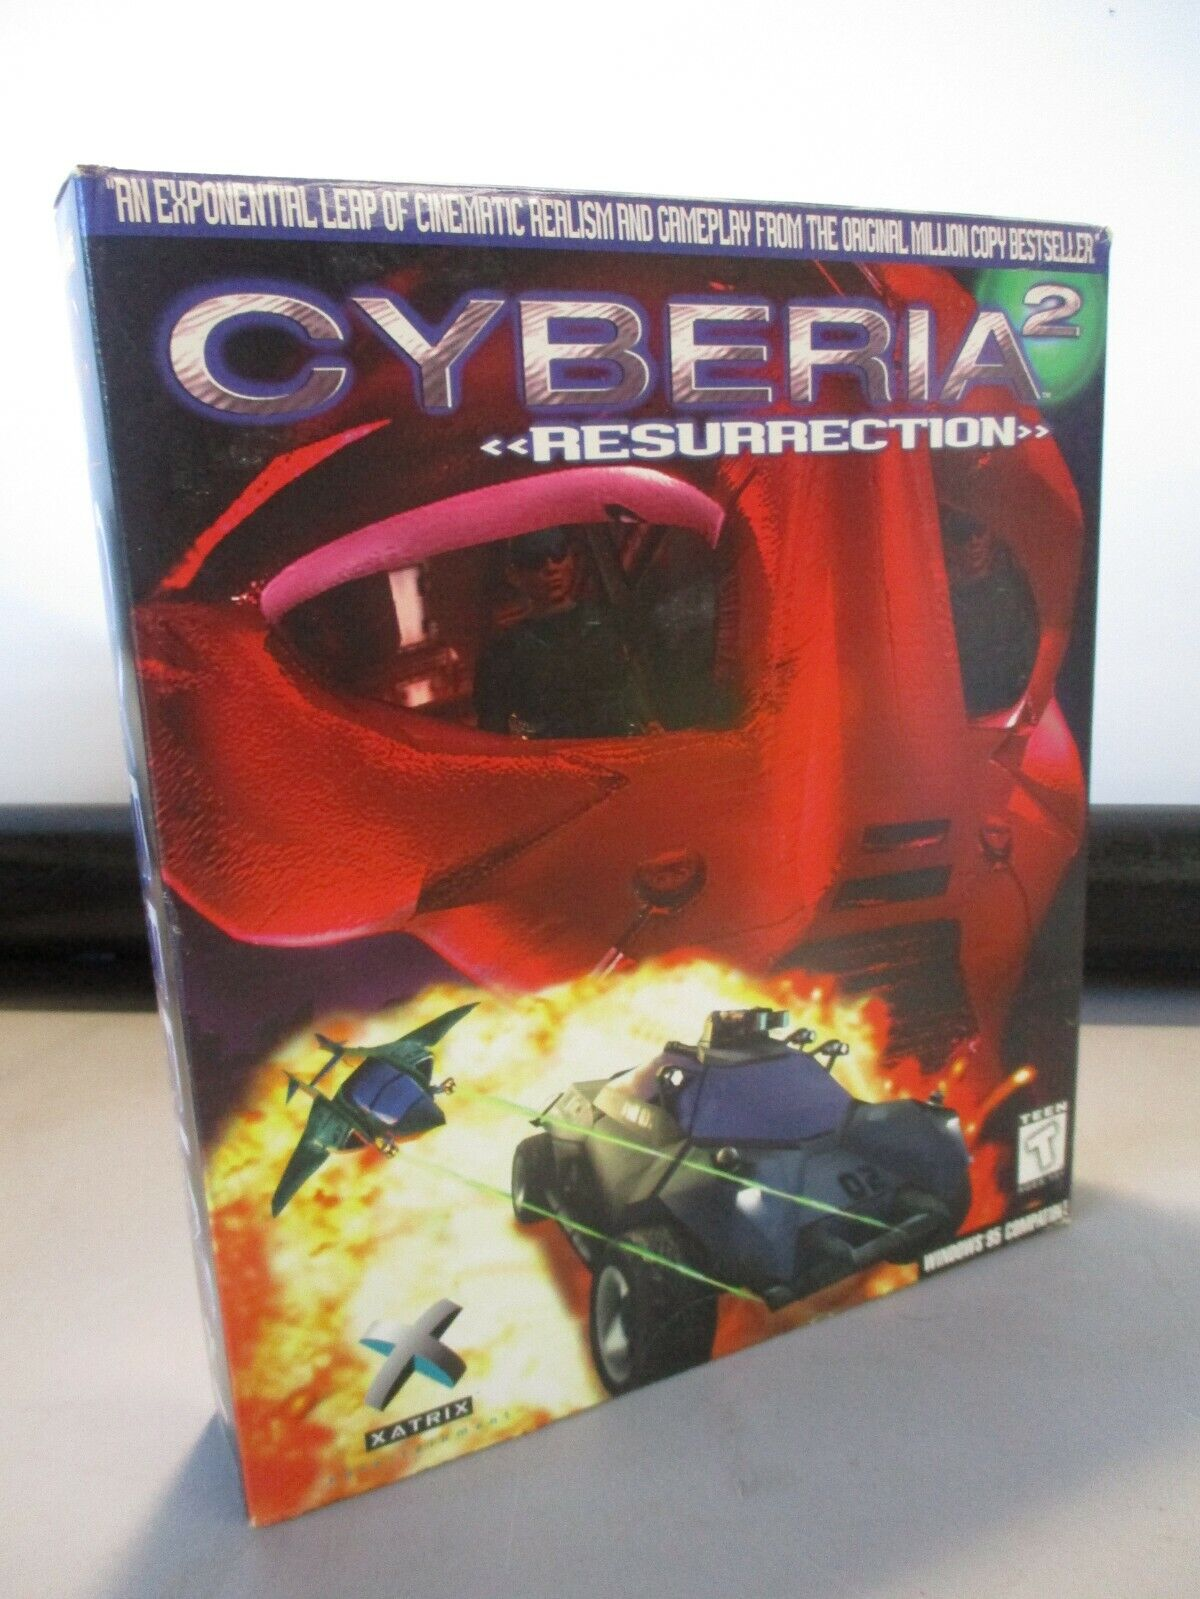 Computer Games - VINTAGE PC COMPUTER GAME CD ROM XATRIX CYBERIA 2 RESURRECTION GAME IN BOX